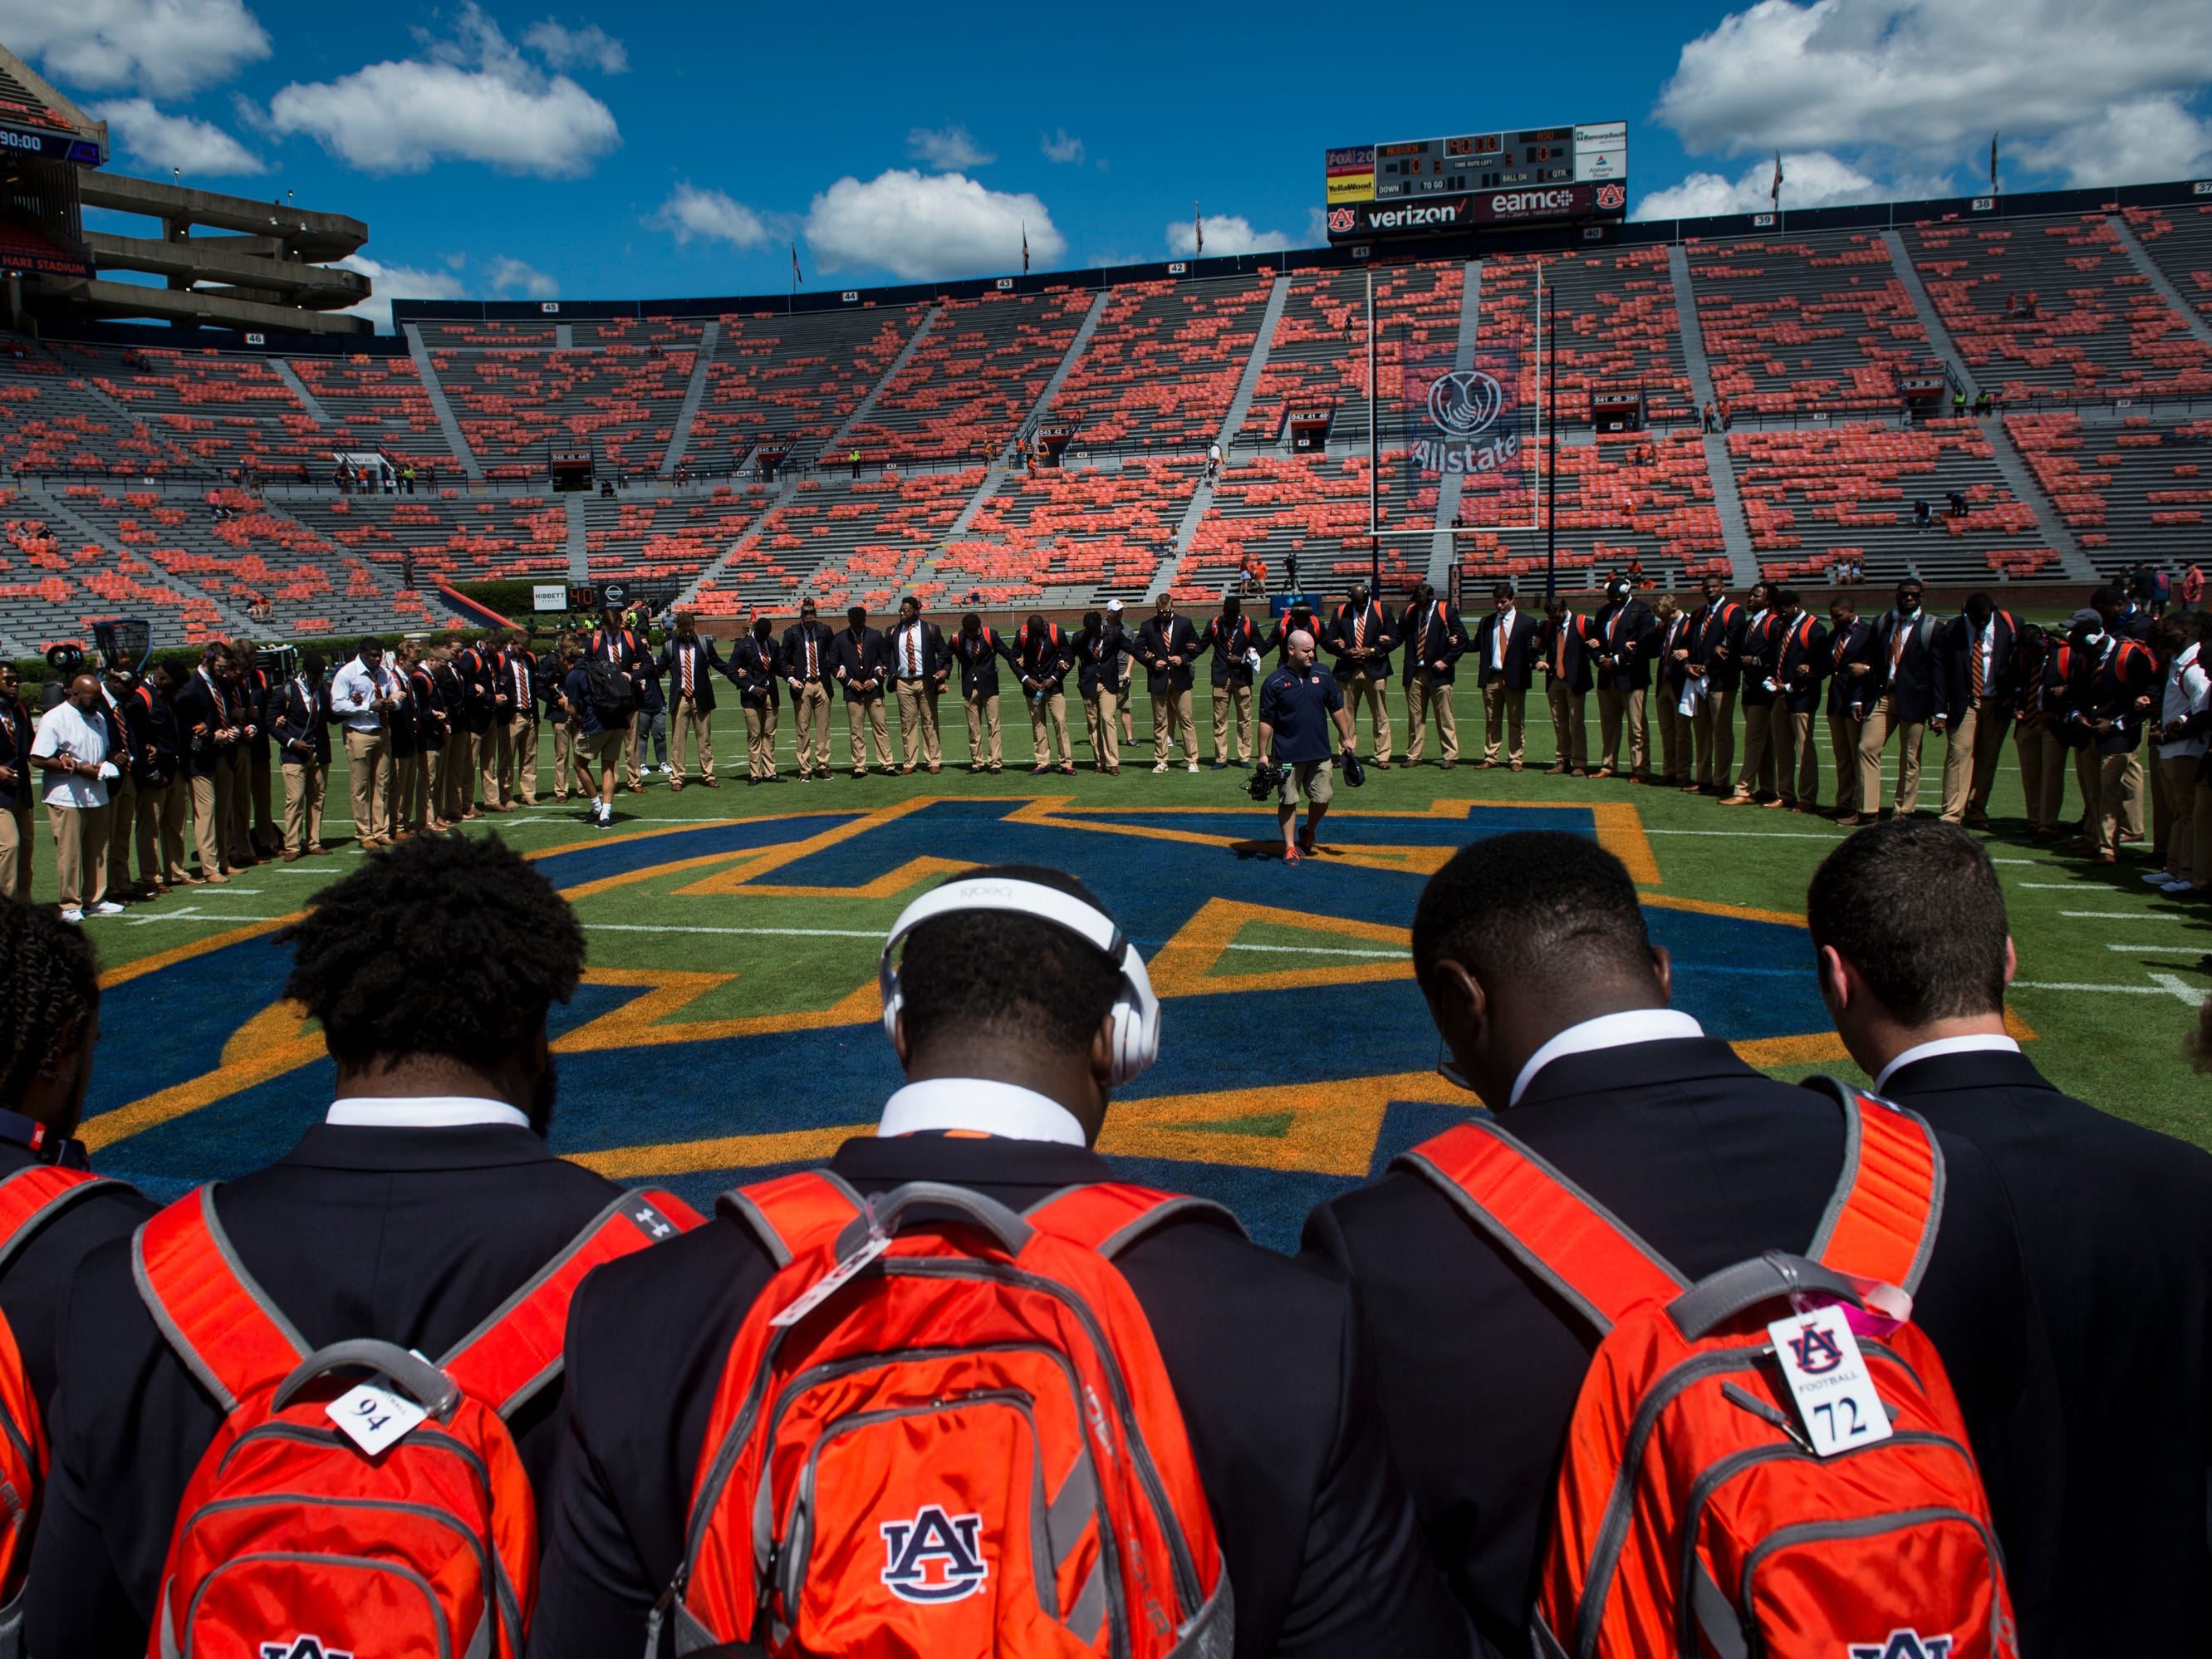 Auburn players huddle on the field before taking on LSU after the Tiger Walk at Jordan-Hare Stadium in Auburn, Ala., on Saturday, Sept. 15, 2018.